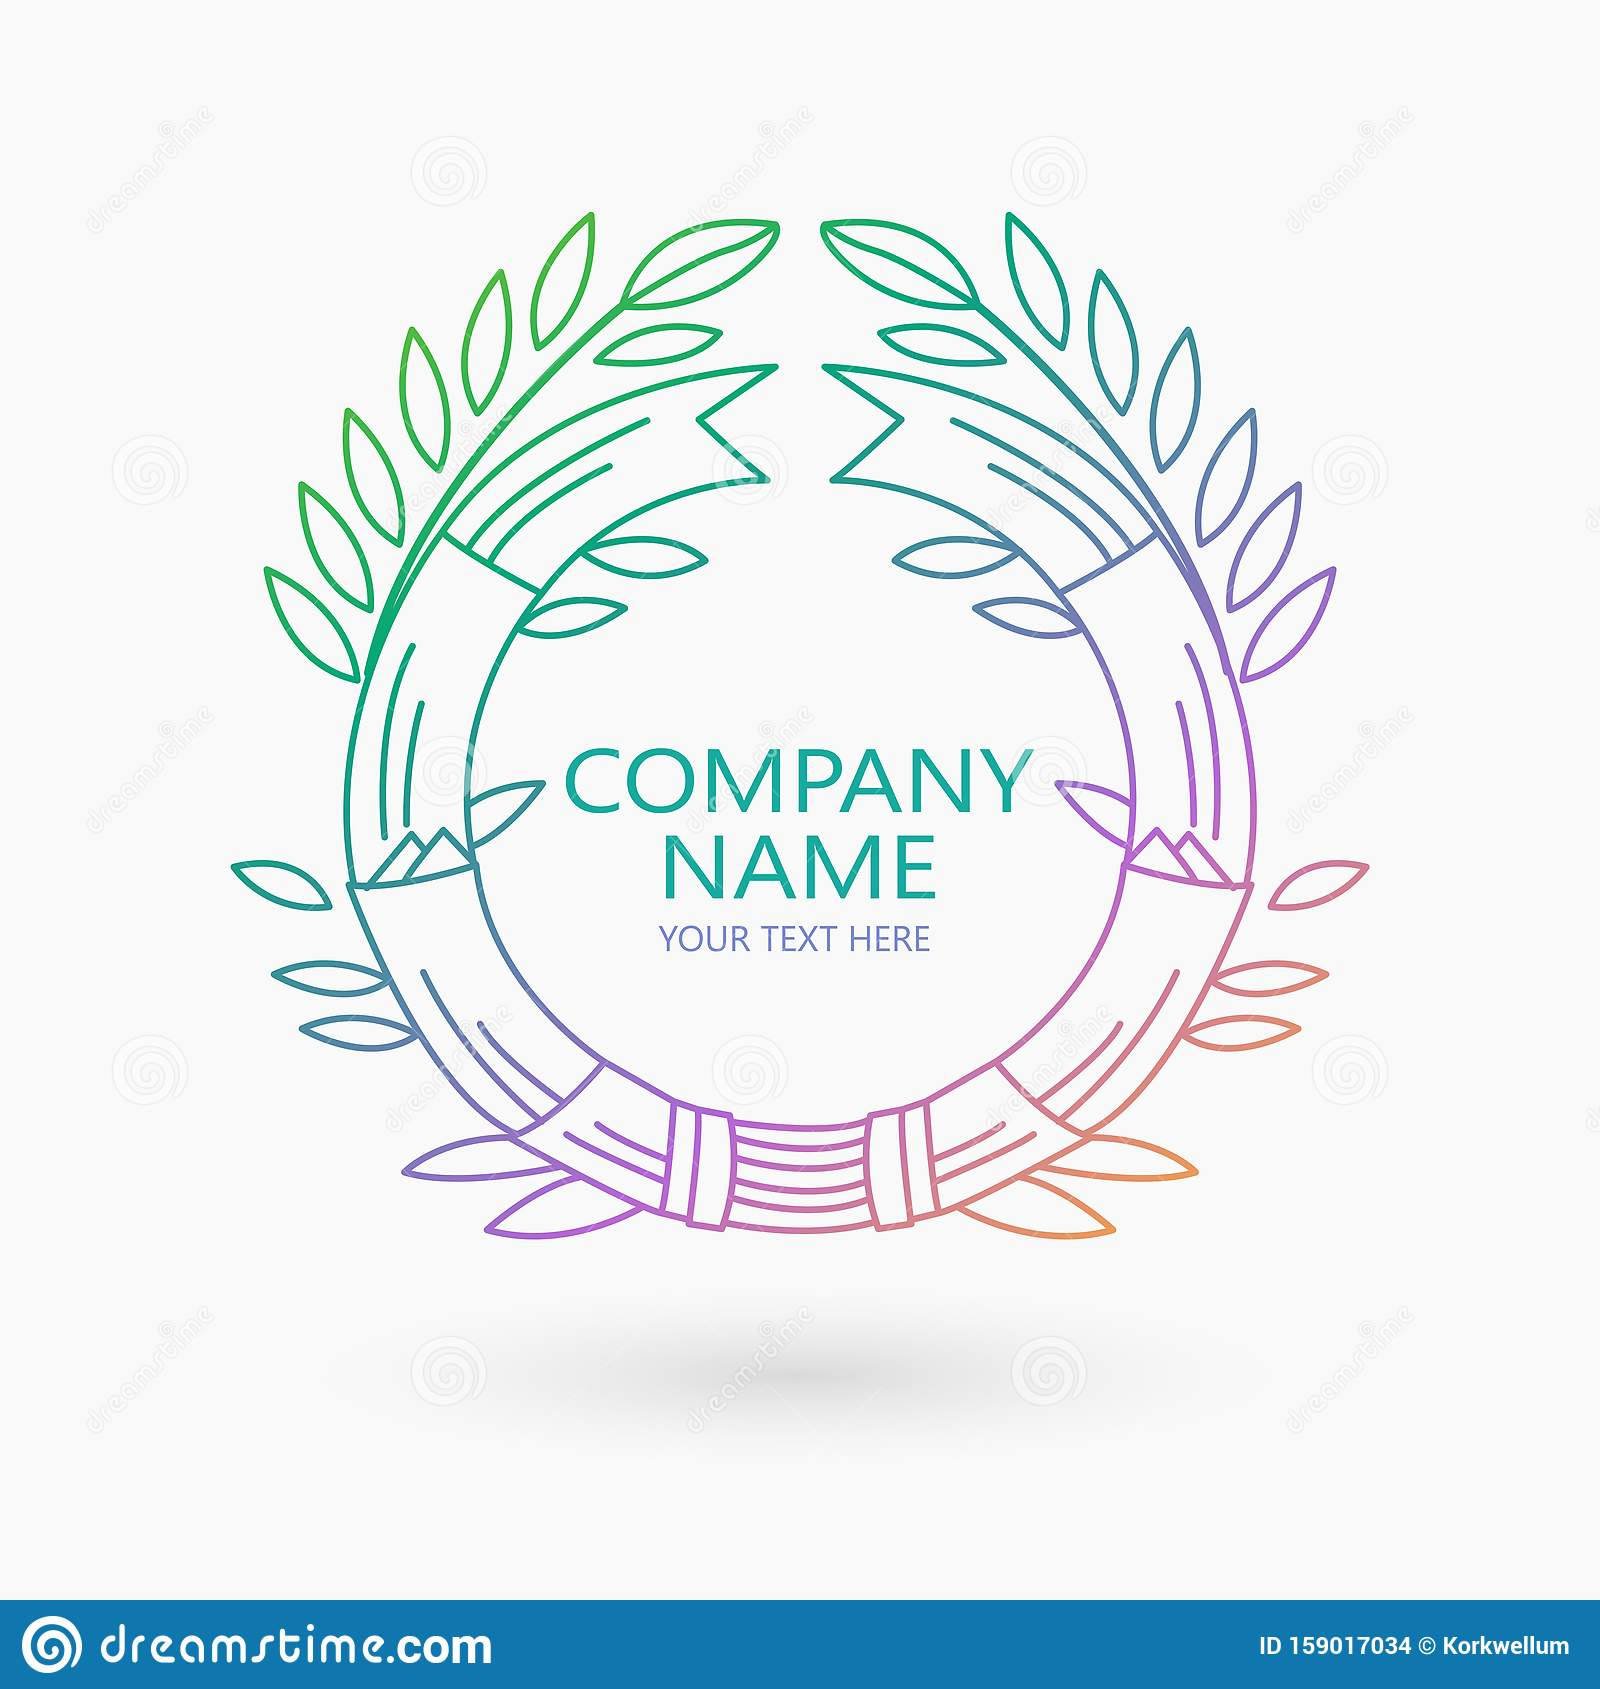 Vector Logo Design Template With Leaves And Lines For